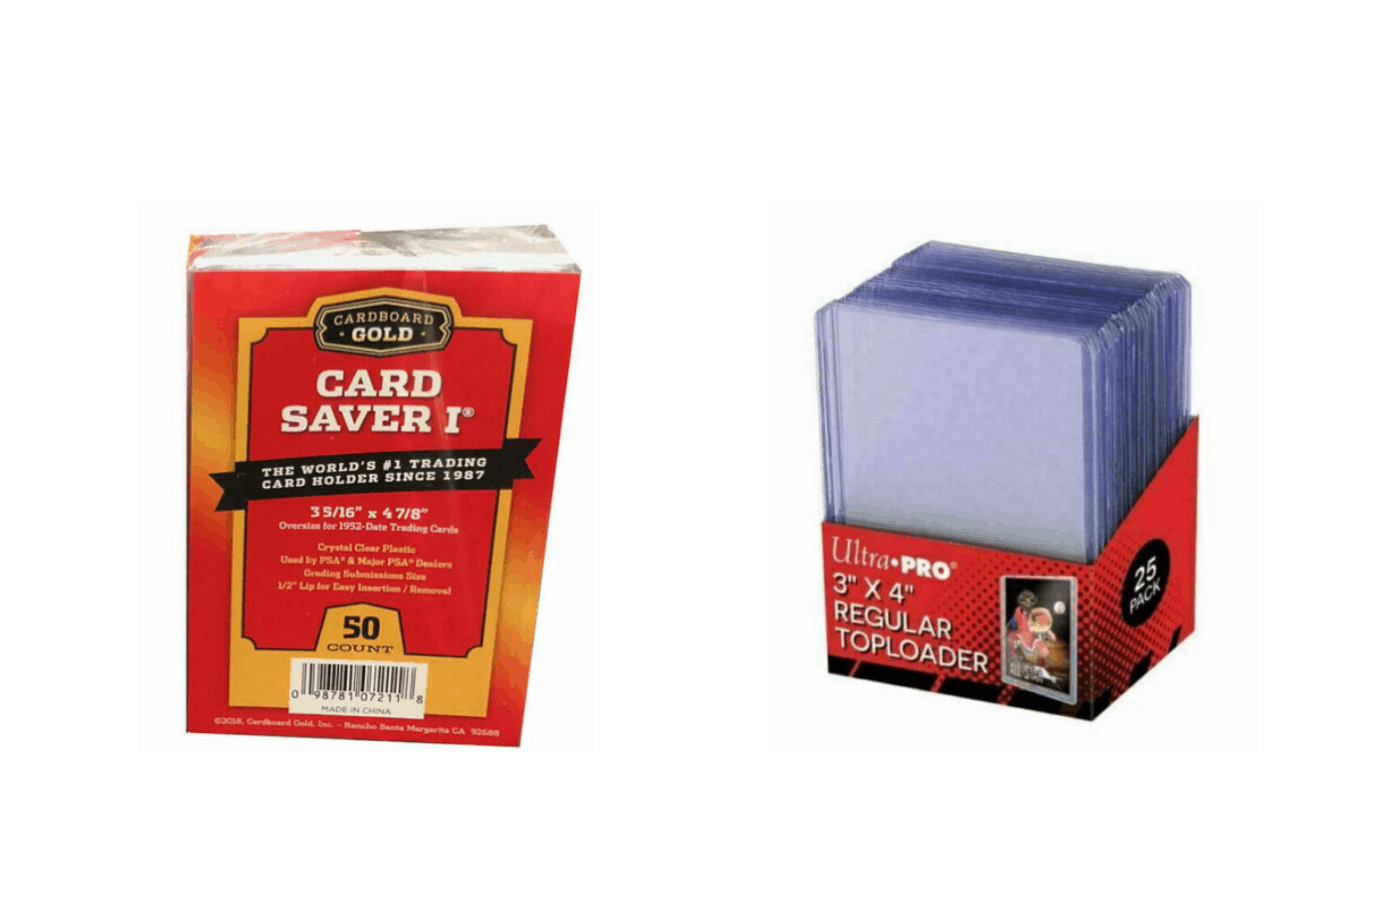 are card savers better than top loaders